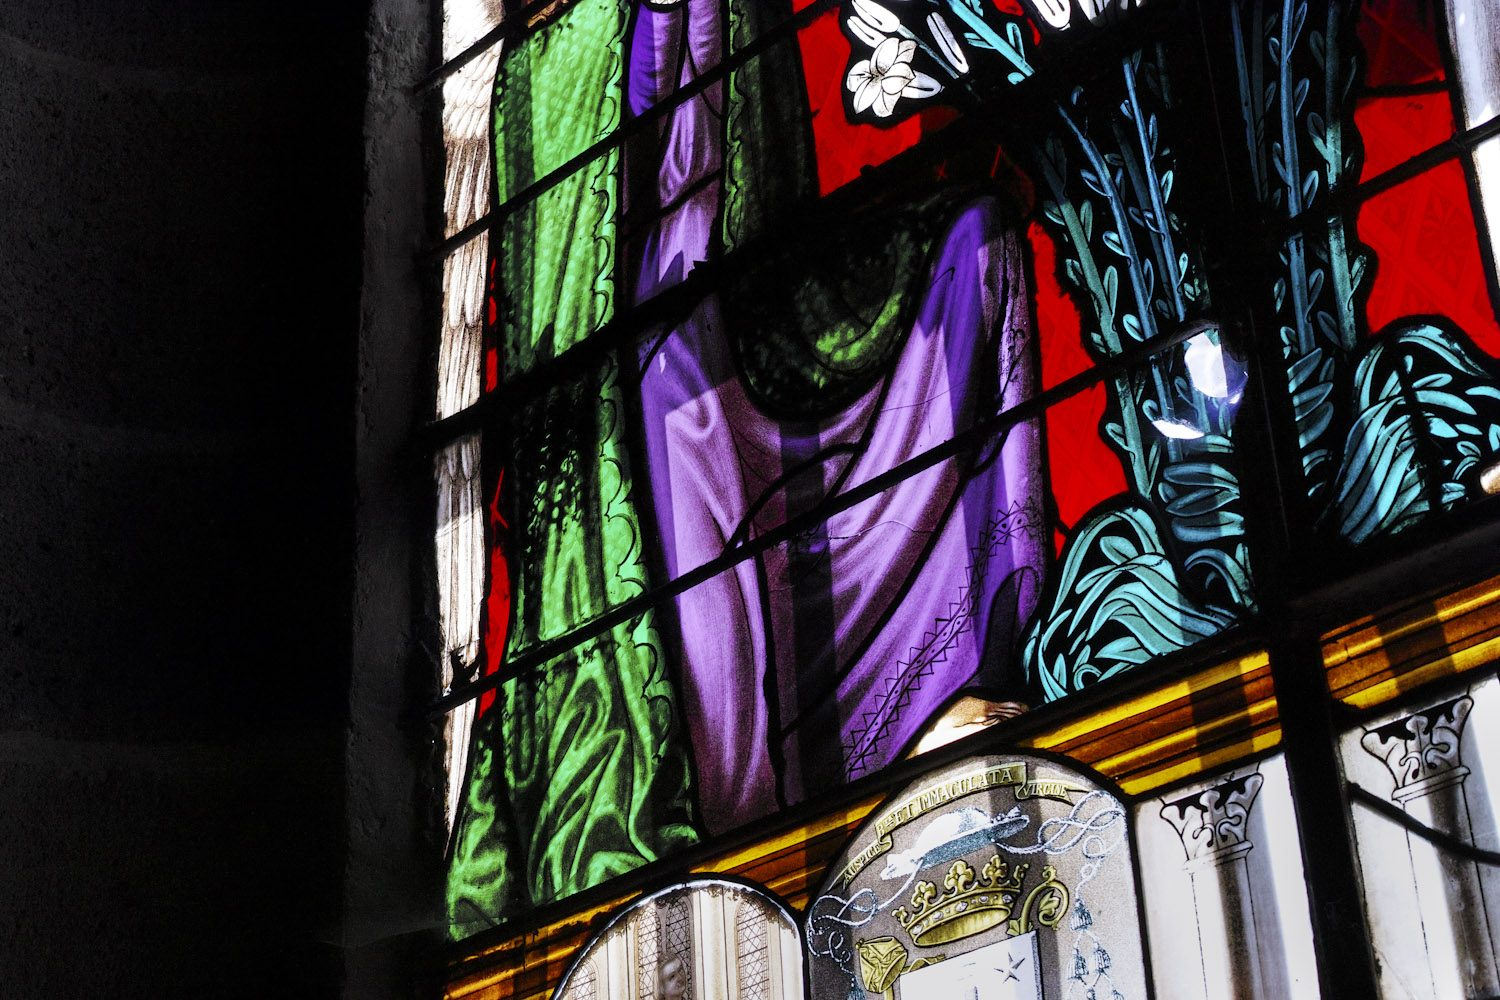 stained_glass_windows_cantal_france_finland_thevoyageur006